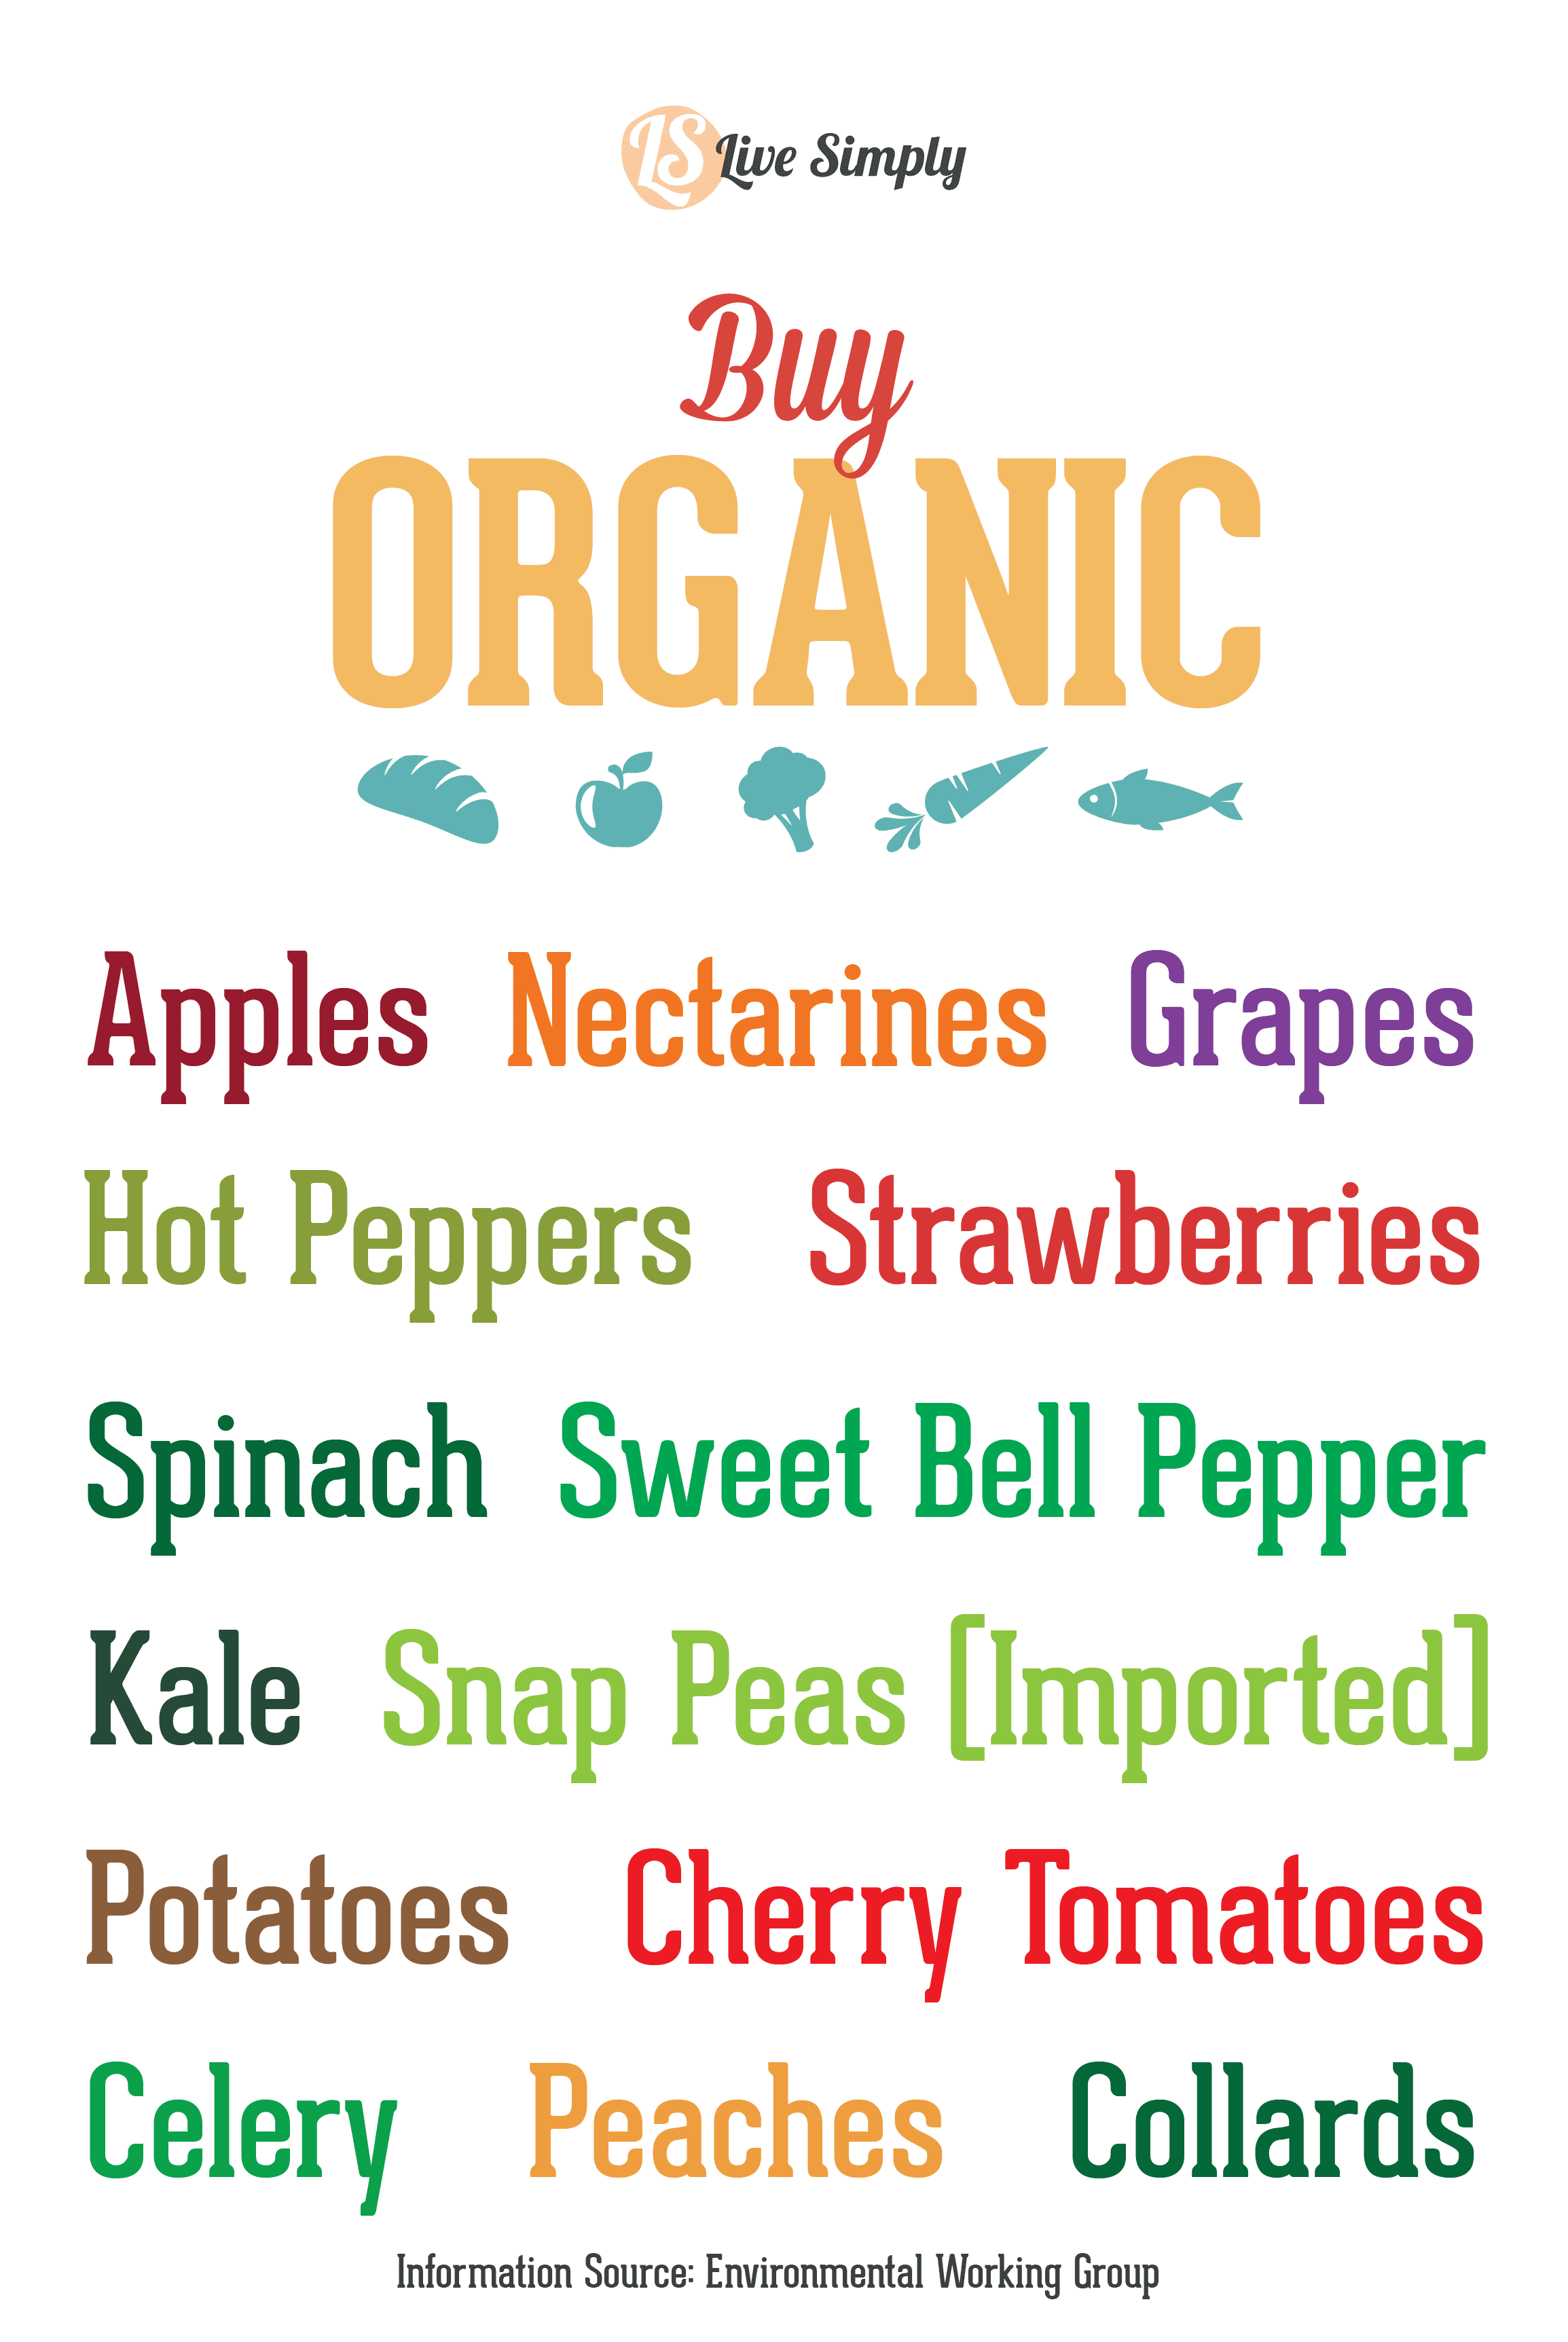 What to buy organic produce